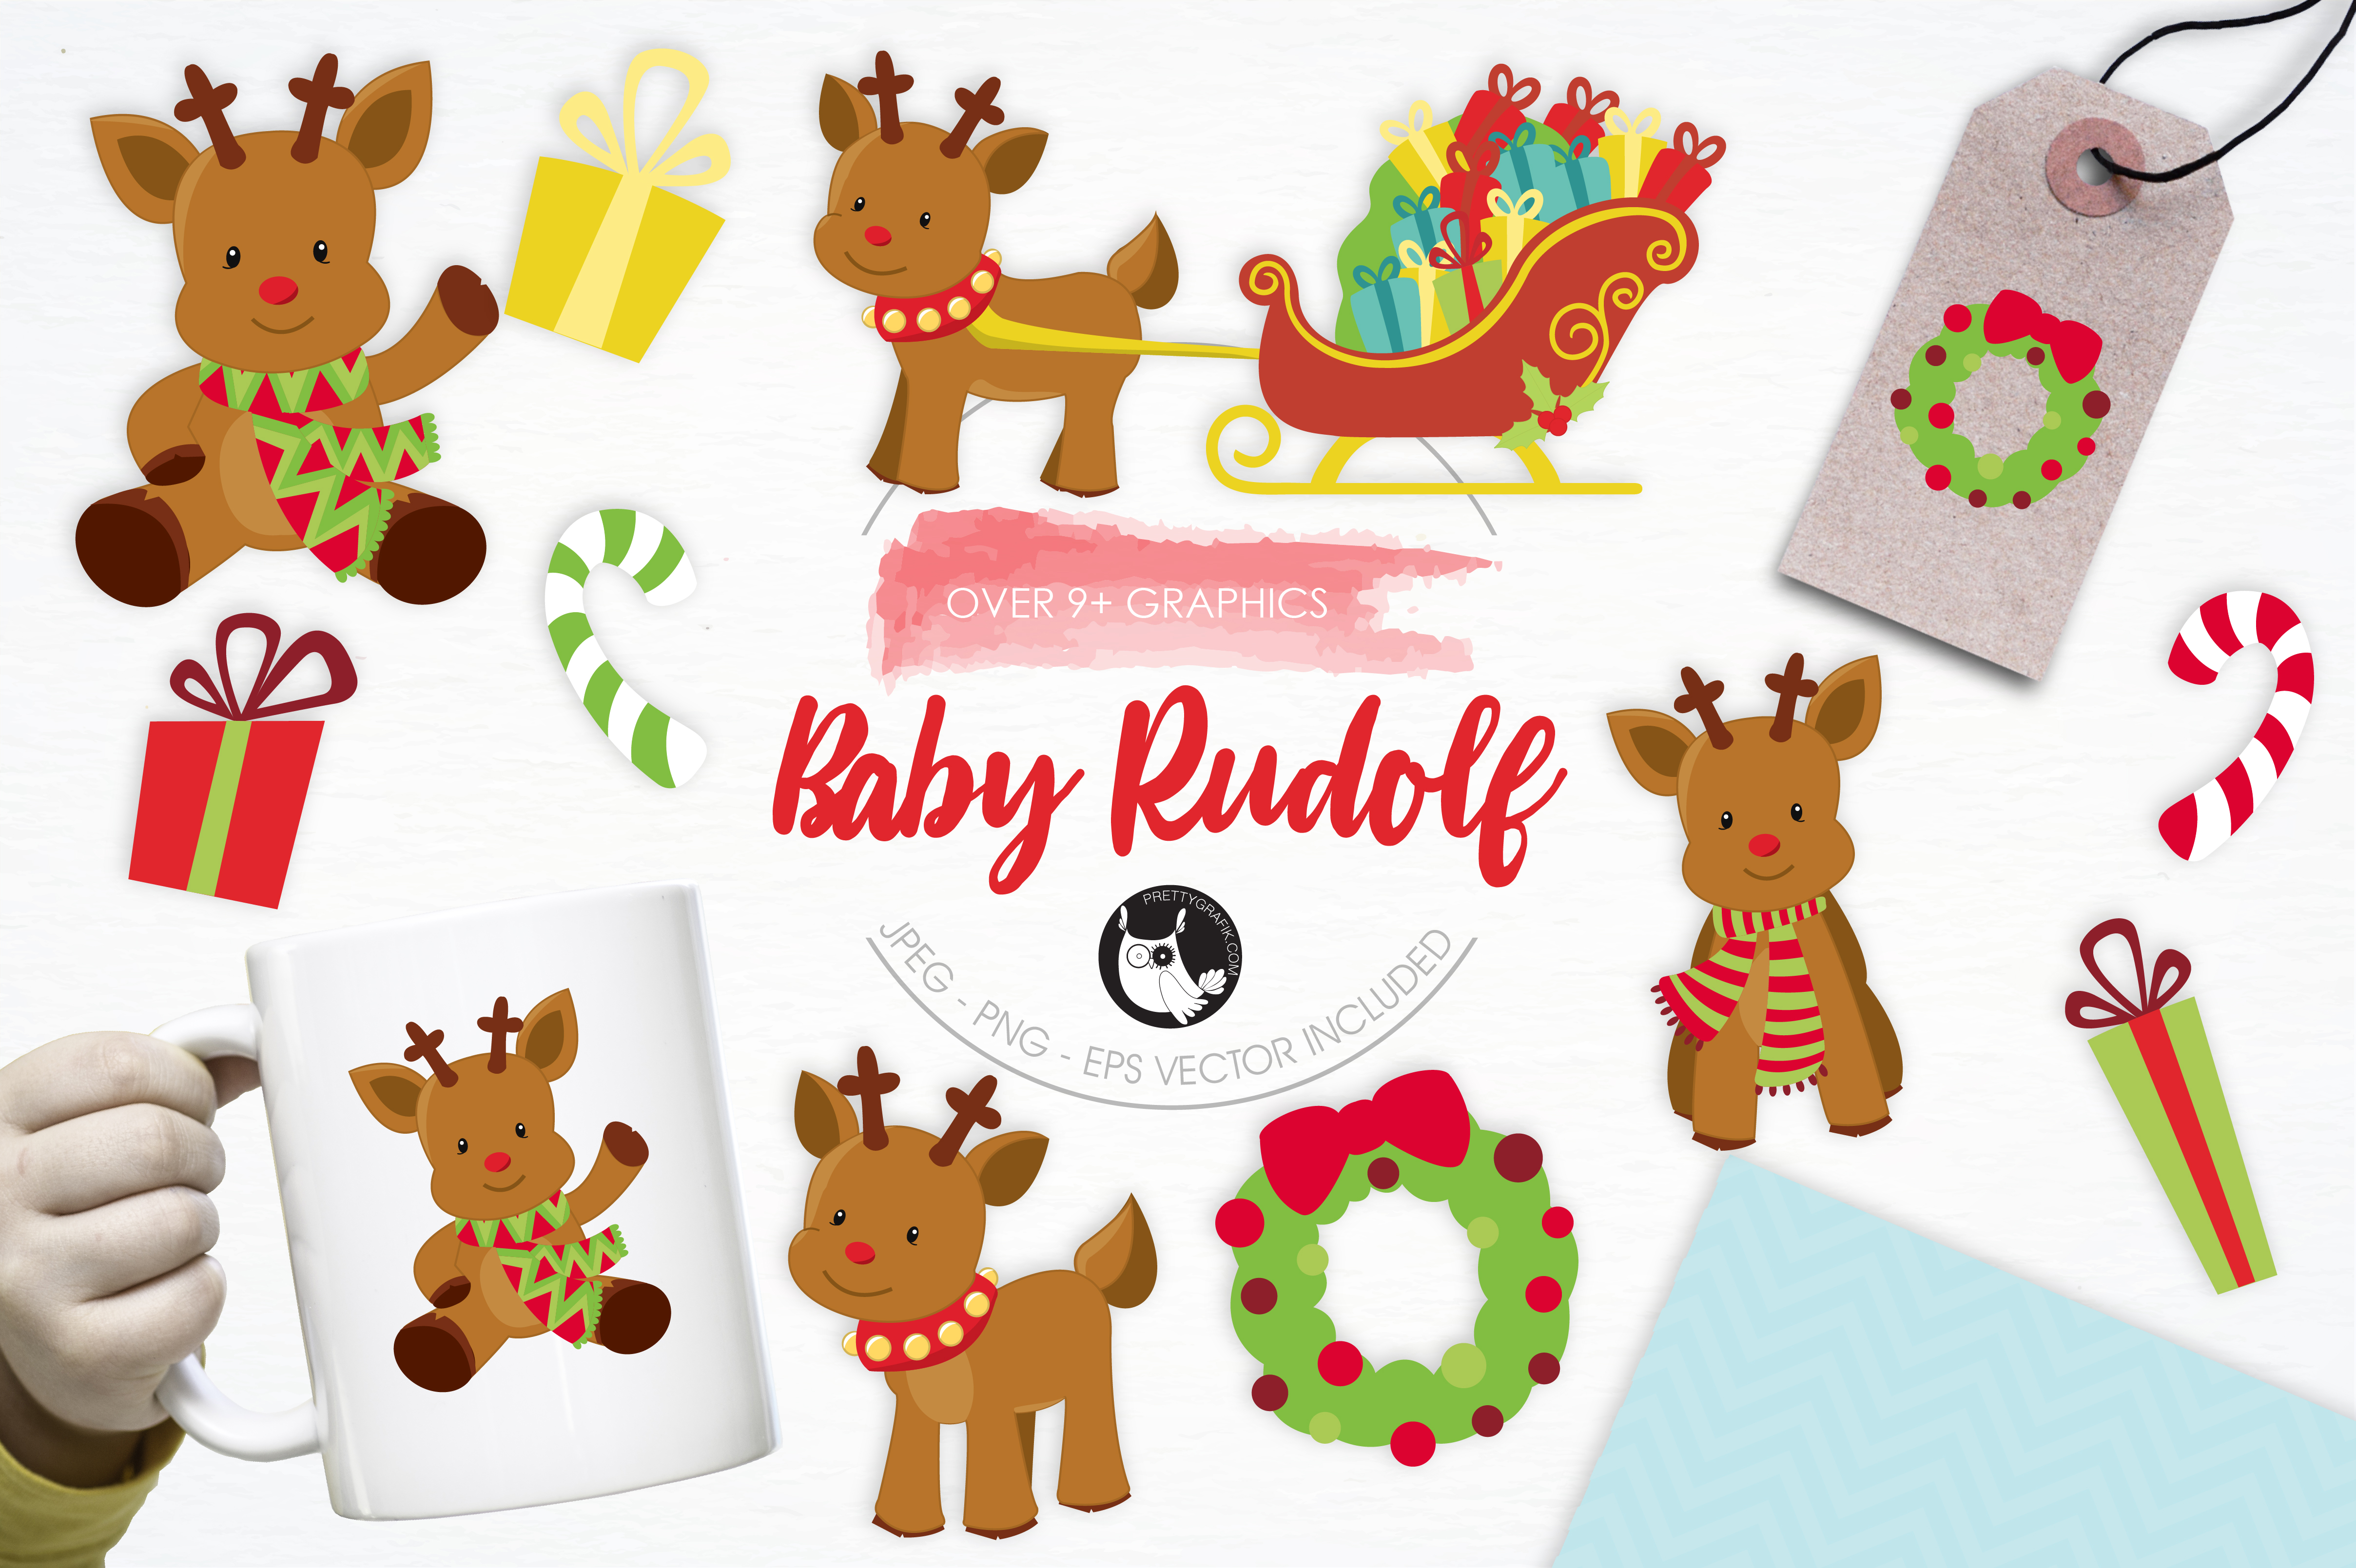 Download Free Baby Rudolf Graphic By Prettygrafik Creative Fabrica for Cricut Explore, Silhouette and other cutting machines.